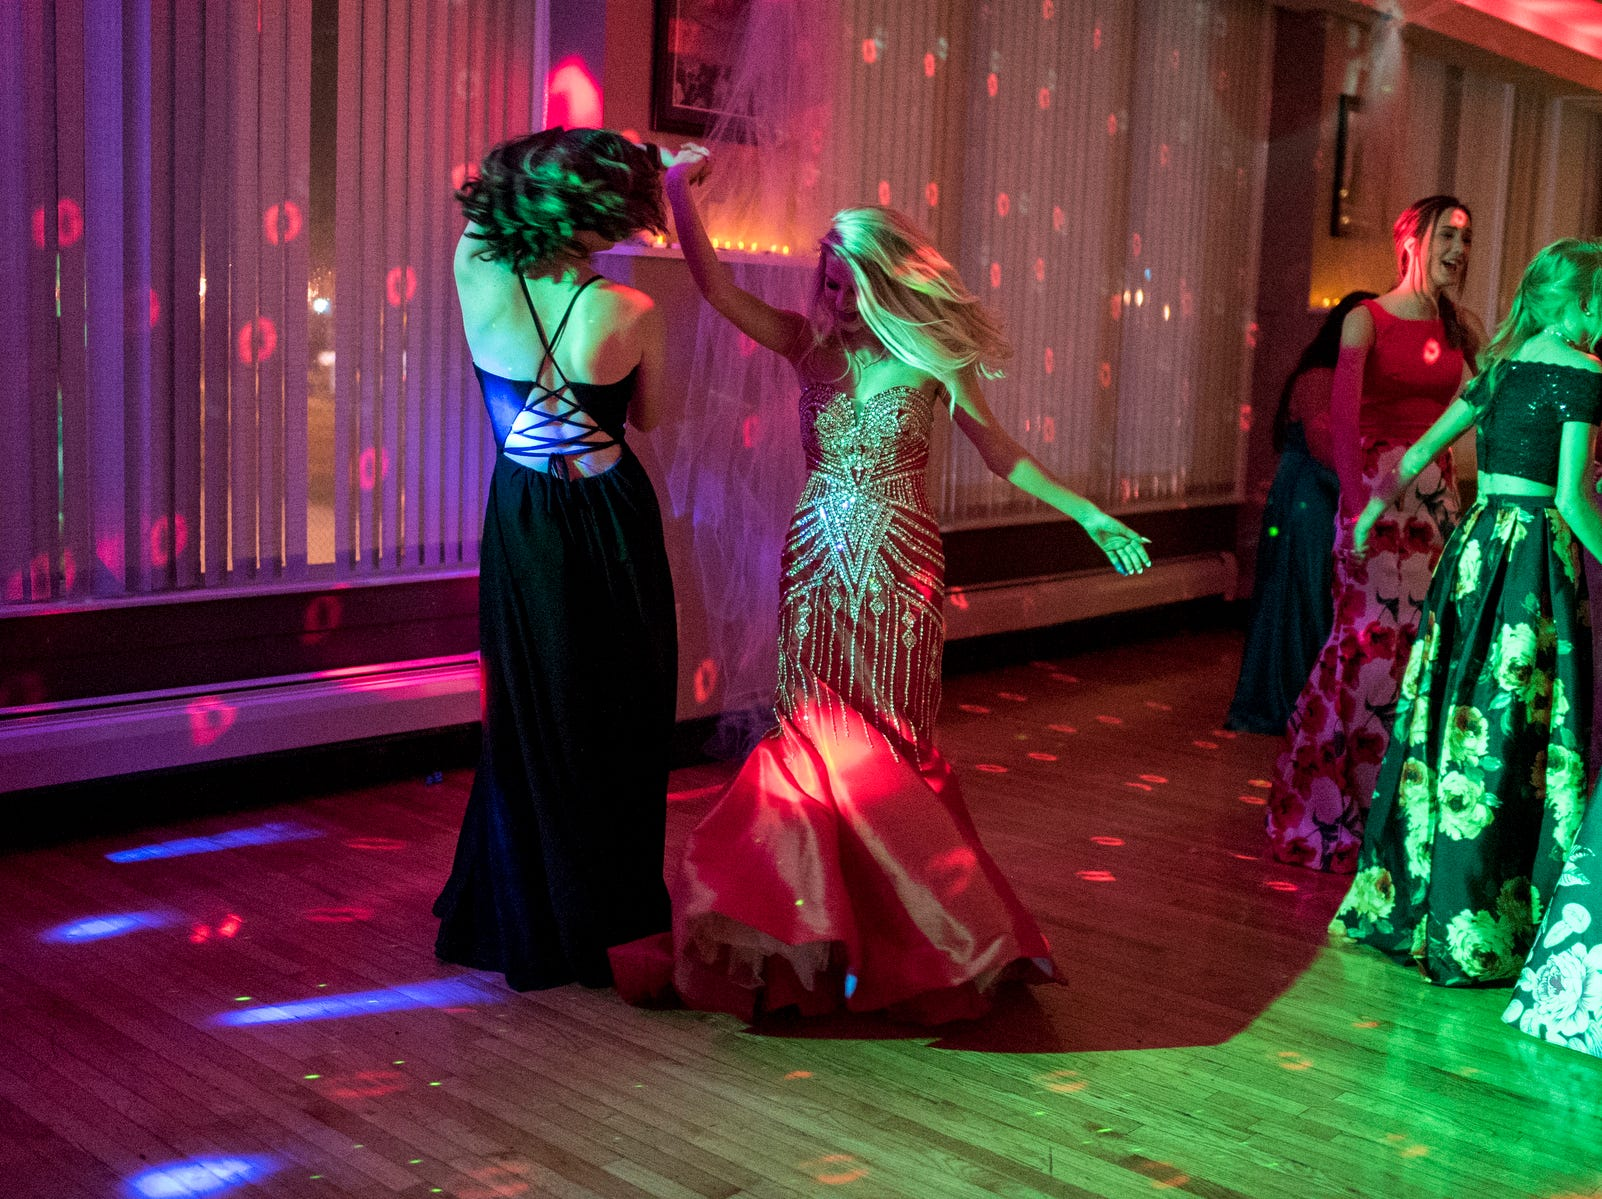 Lexi Albin, left, spins Josefine Trulsson, right, around on the dance floor during Evansville Day School's prom held at the Hadi Shrine Banquet Hall in downtown Evansville, Ind., Saturday, April 27, 2019.